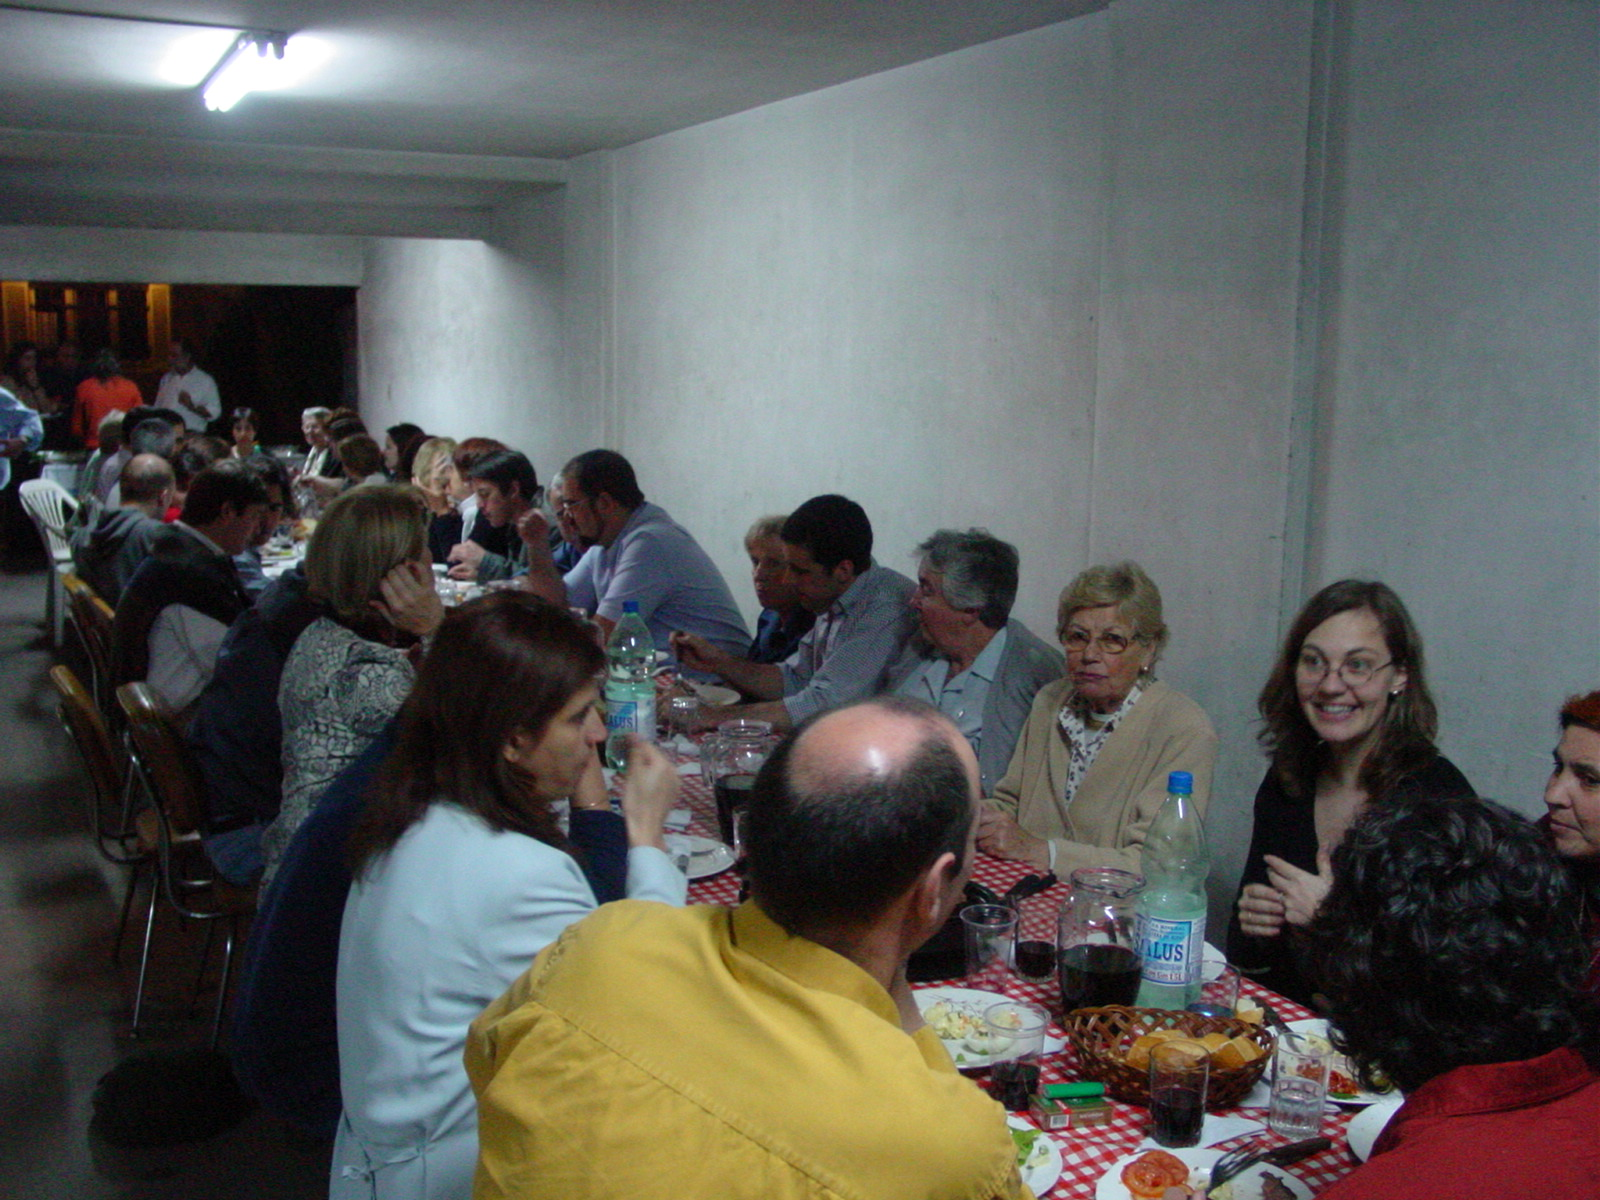 After a working day on Basque Studies, gathering and dinner at the headquarters of Haize Hegoa in Montevideo (photo EuskalKultura.com)